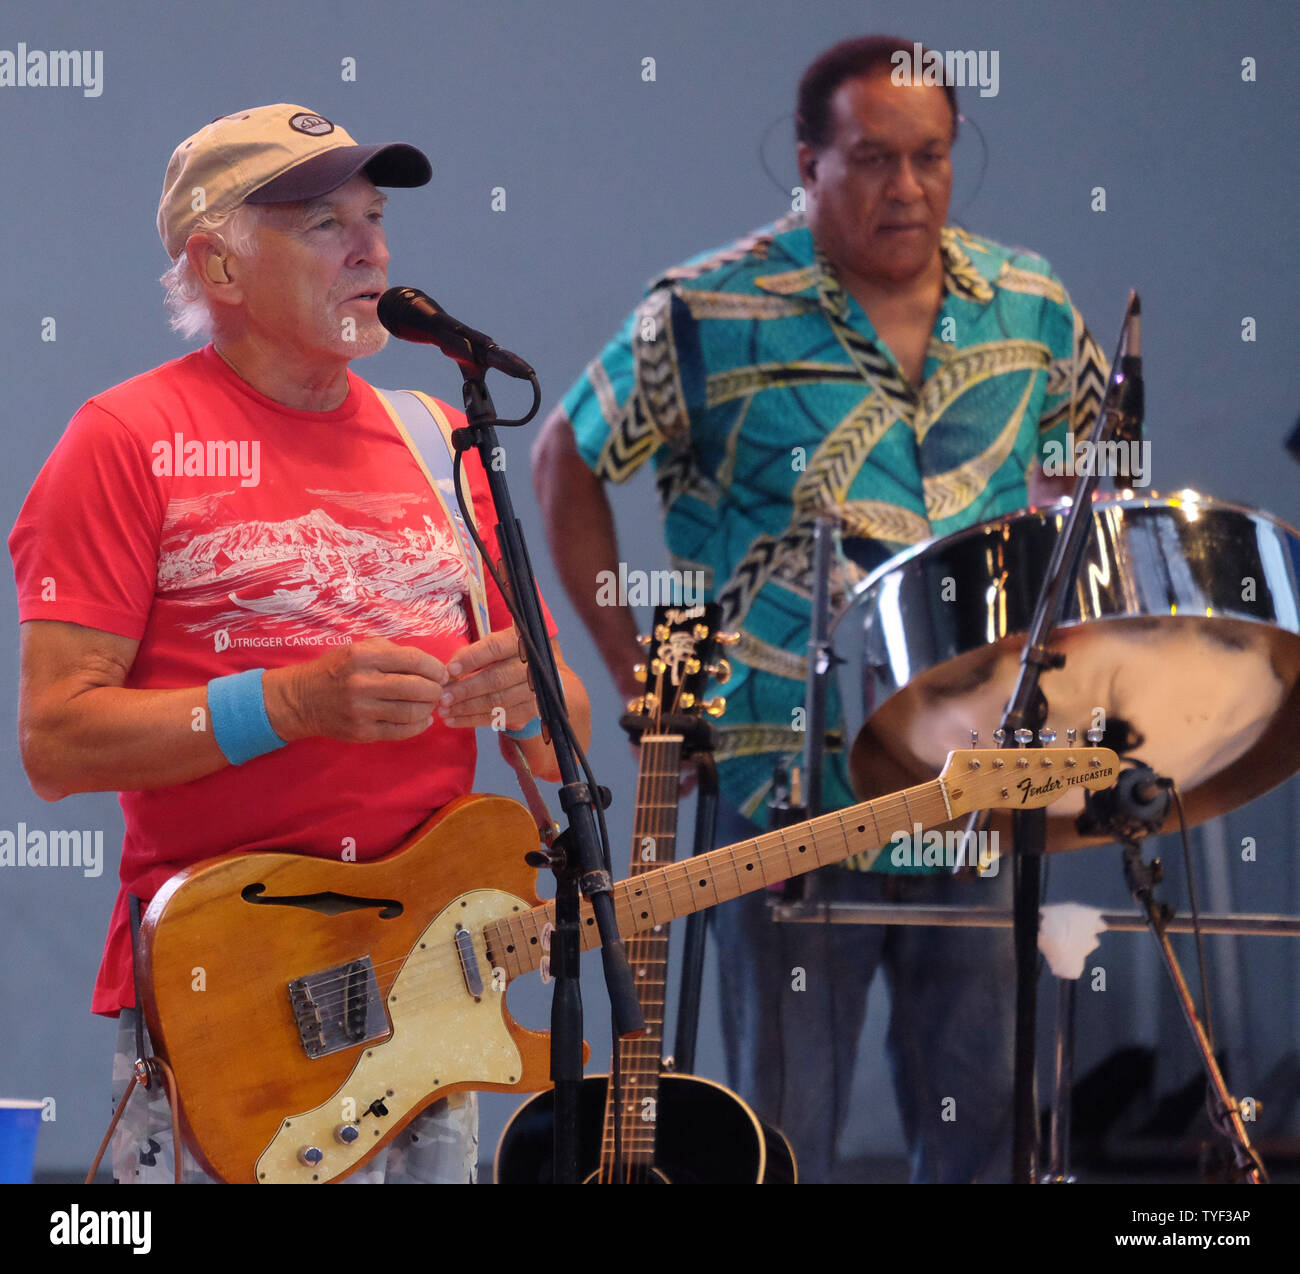 Jimmy Buffett and the Coral Reefer Band perform at the